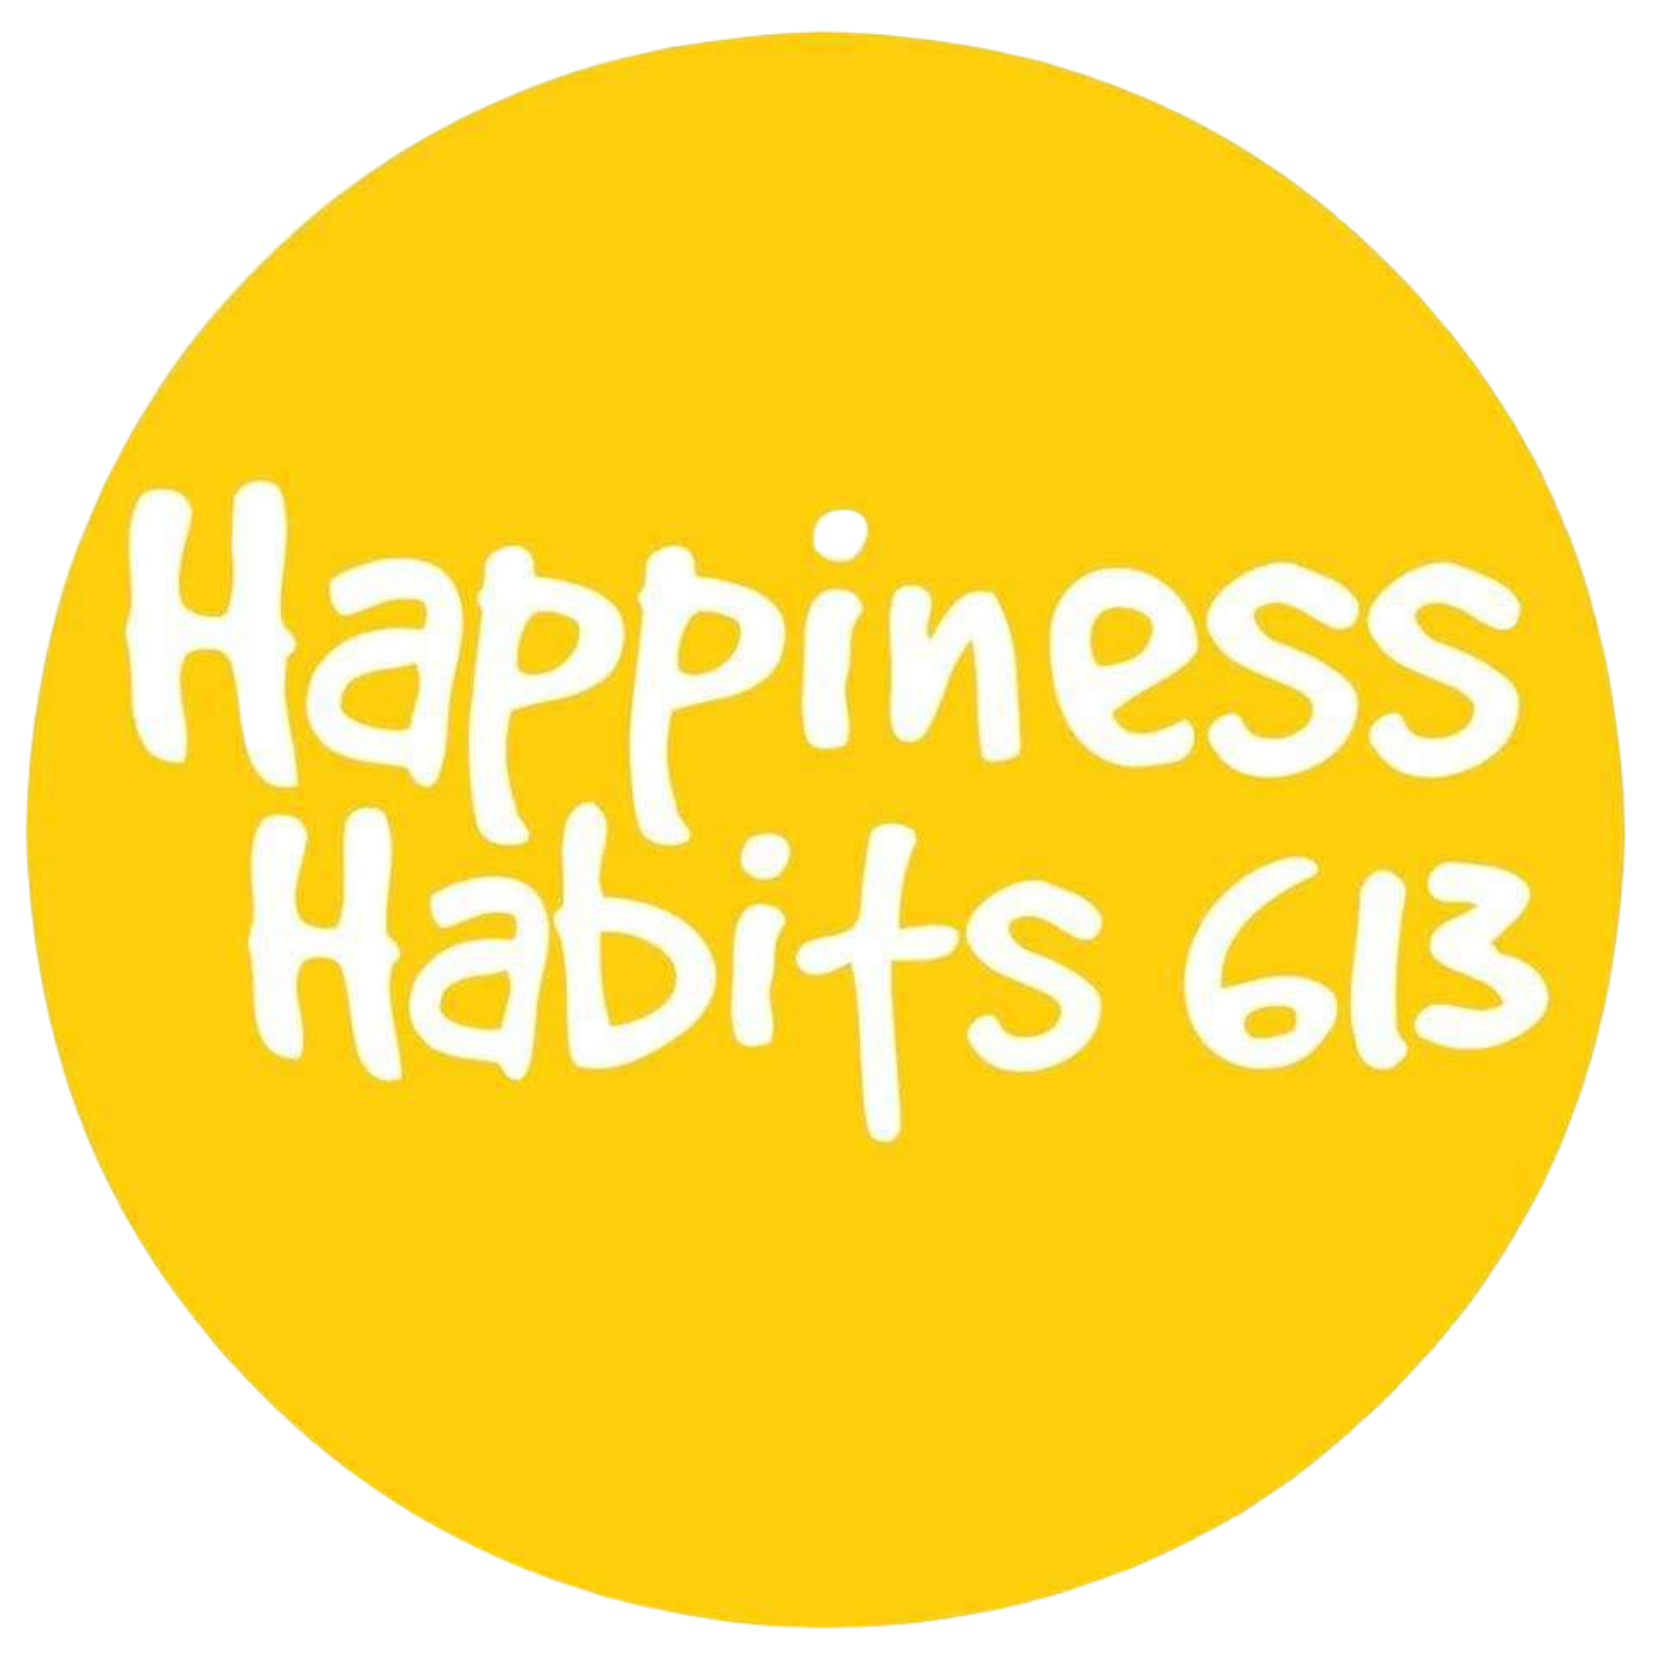 Happiness Habits 613